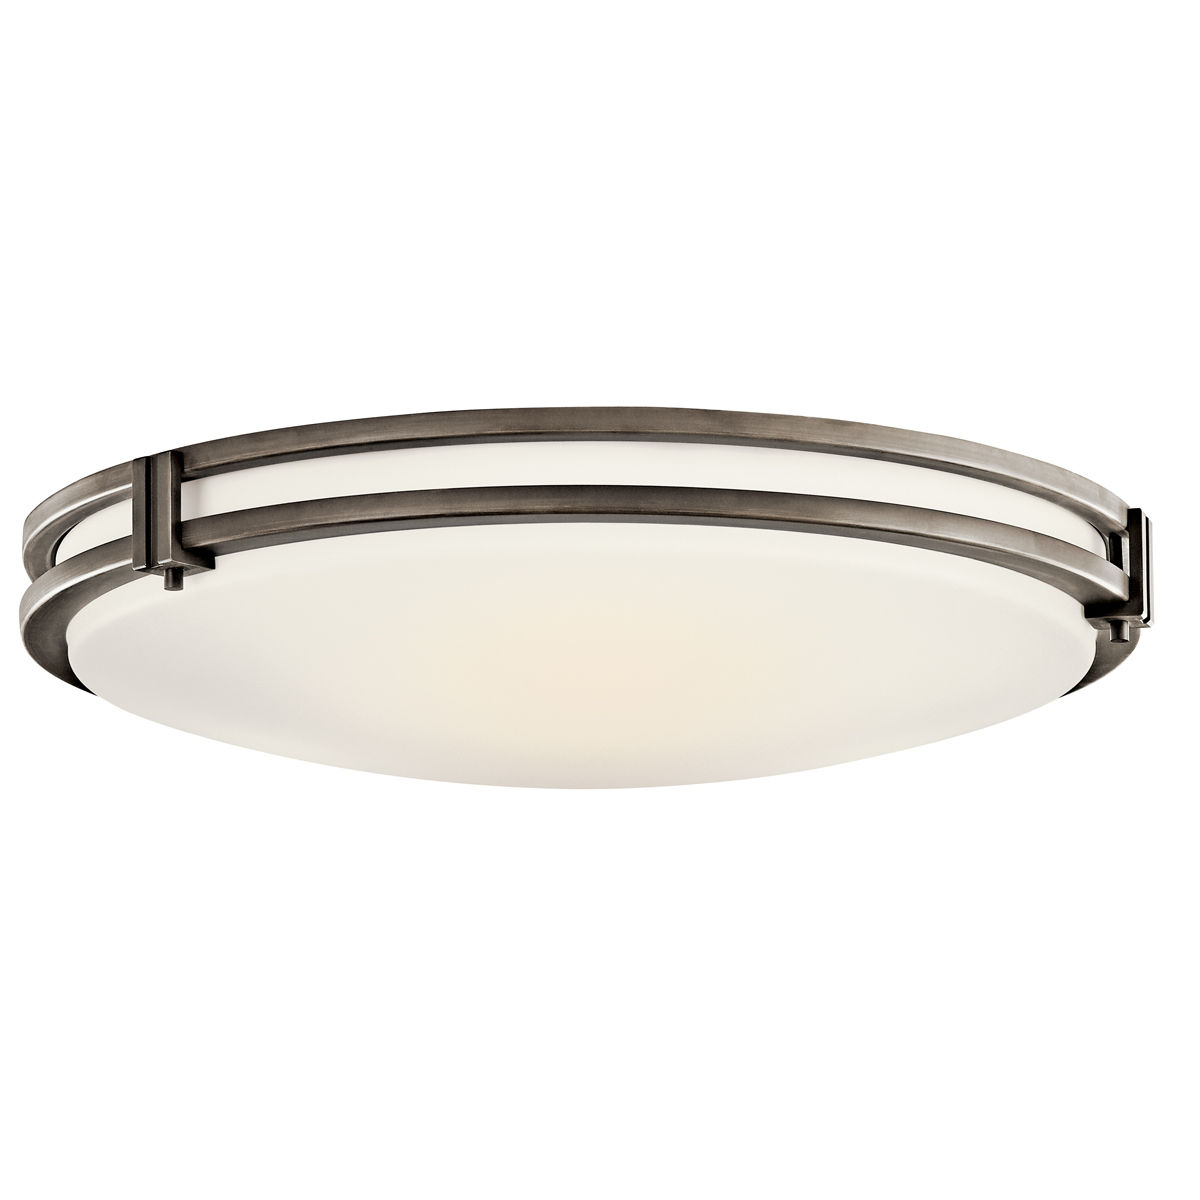 Kichler 10827oz 2 Light 16 Wide Flush Mount Energy Star Ceiling Fixture